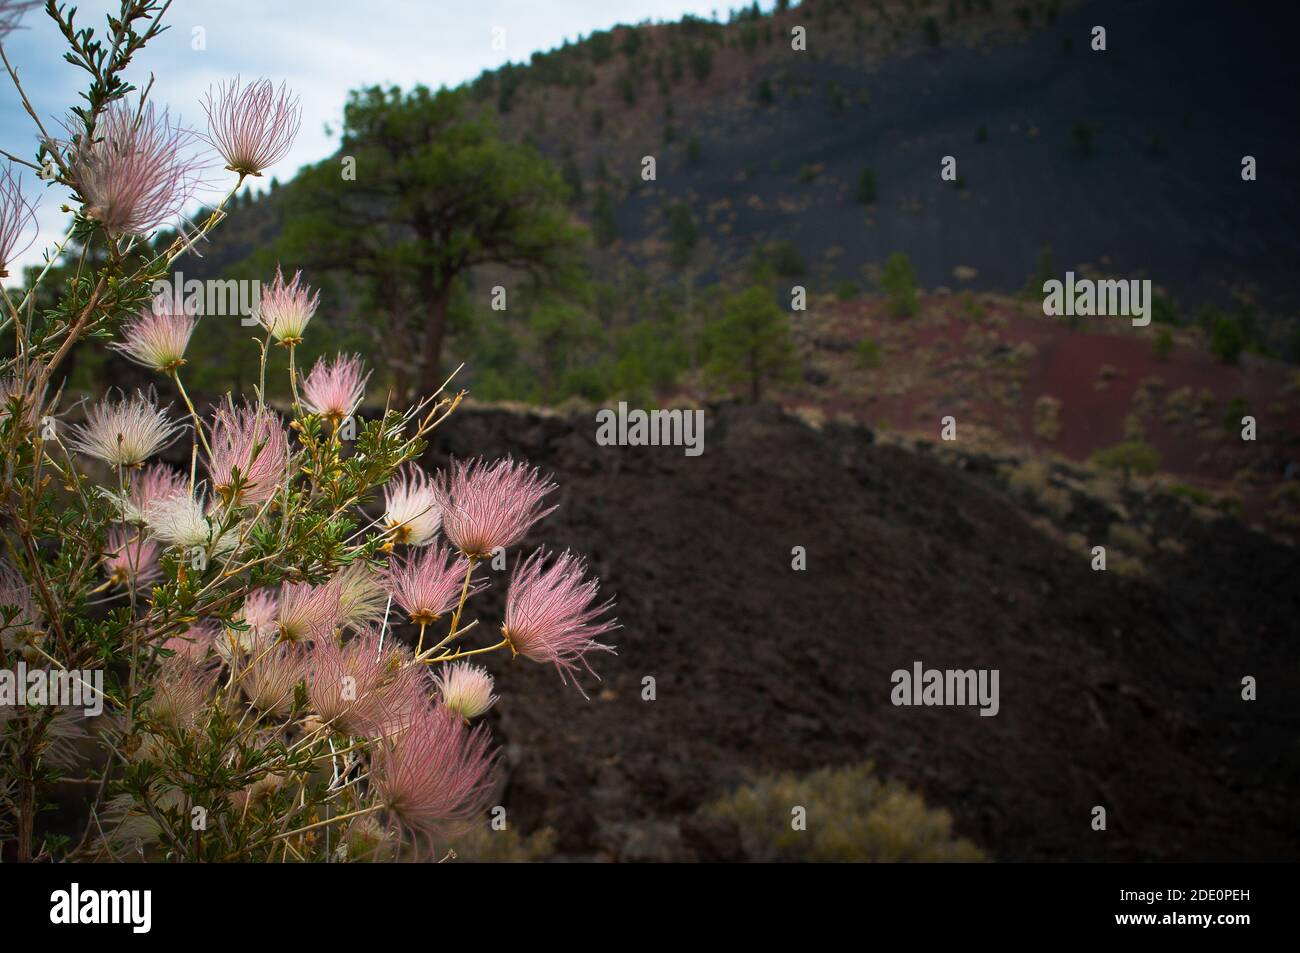 Sunset Crater is the youngest in a string of volcanoes that is related to the nearby San Francisco Peaks. Stock Photo